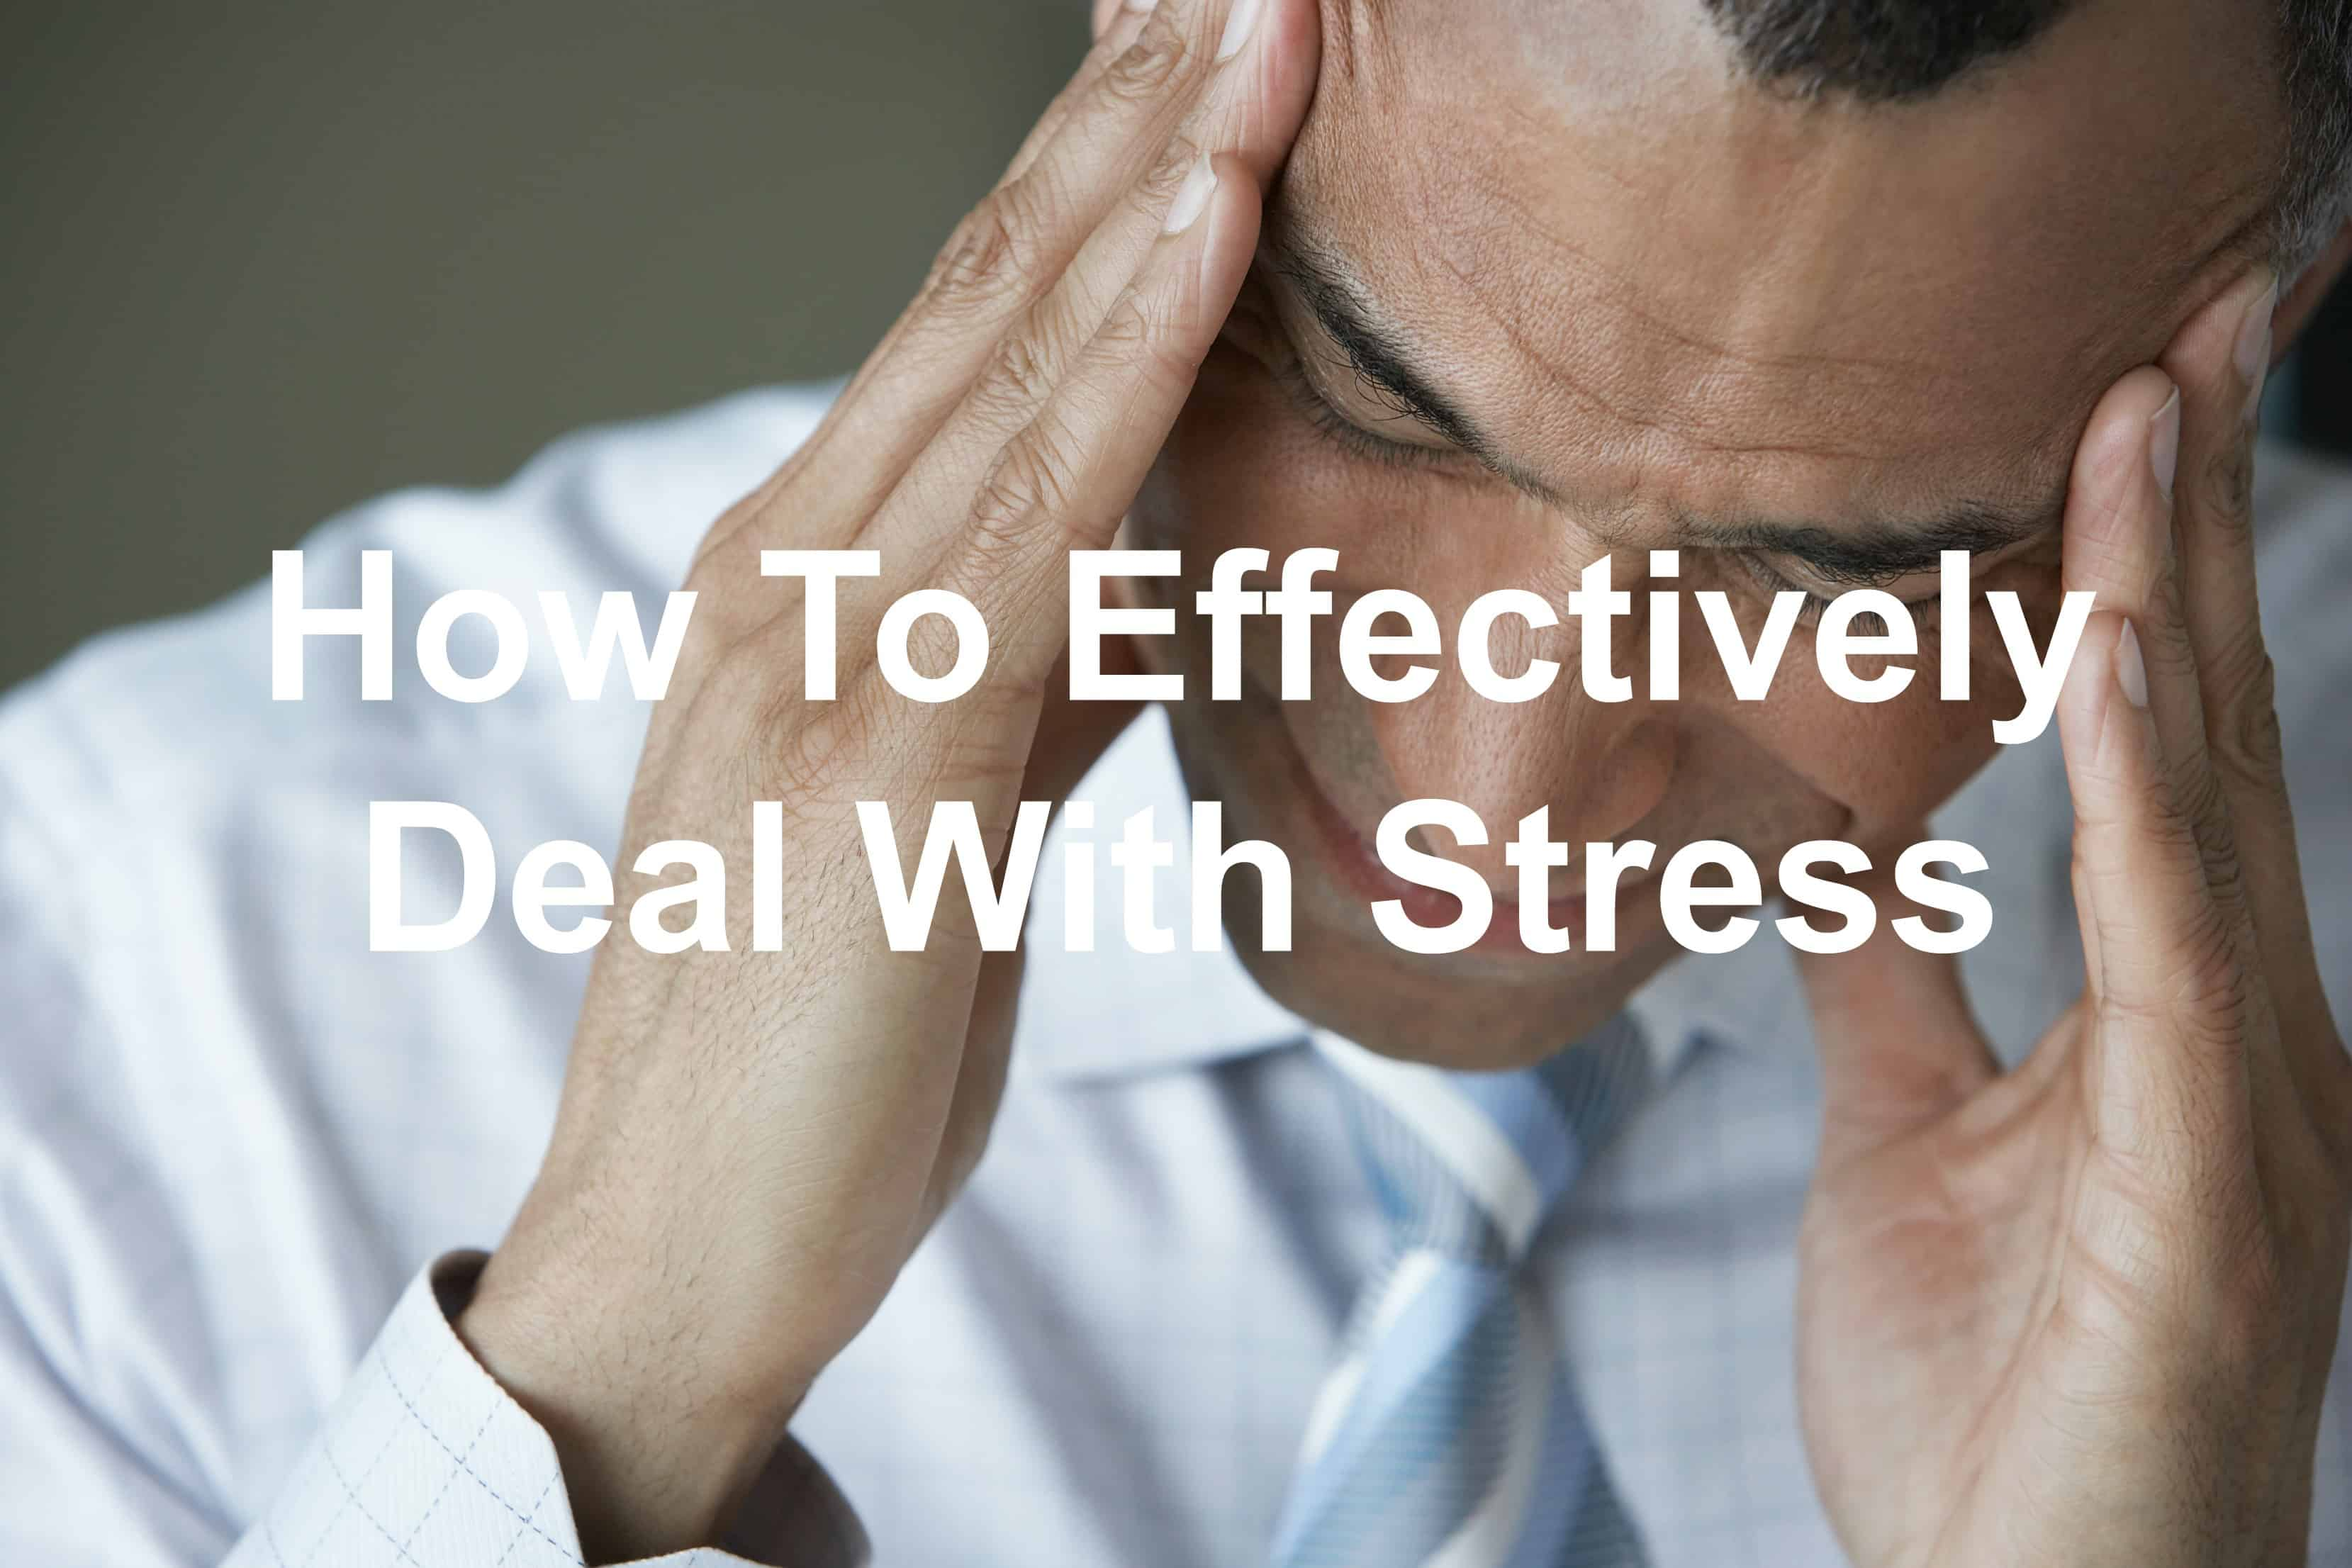 Stress can be overwhelming, deal with it